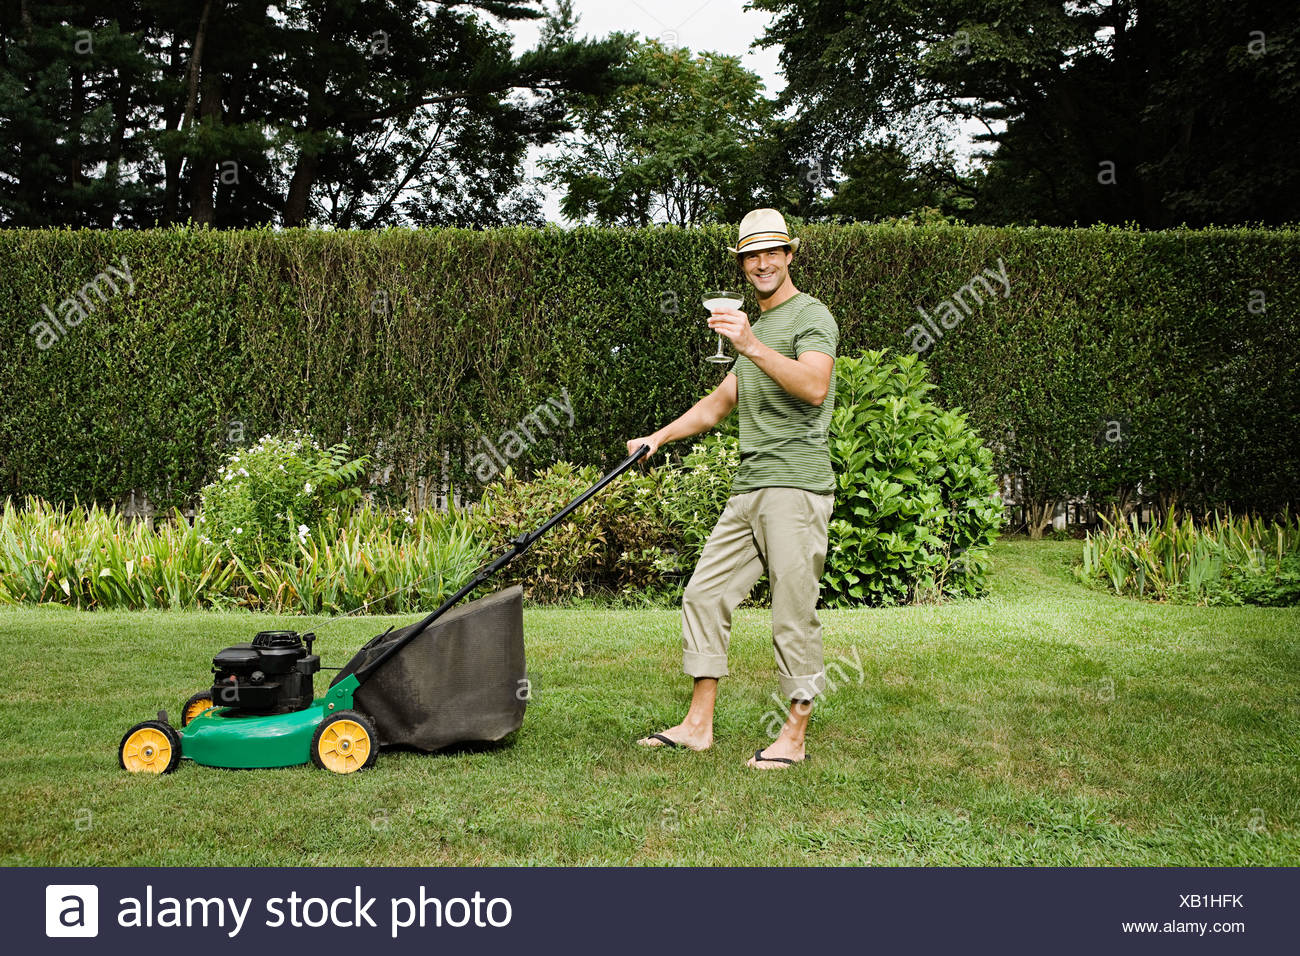 Image result for lawn mower cocktails